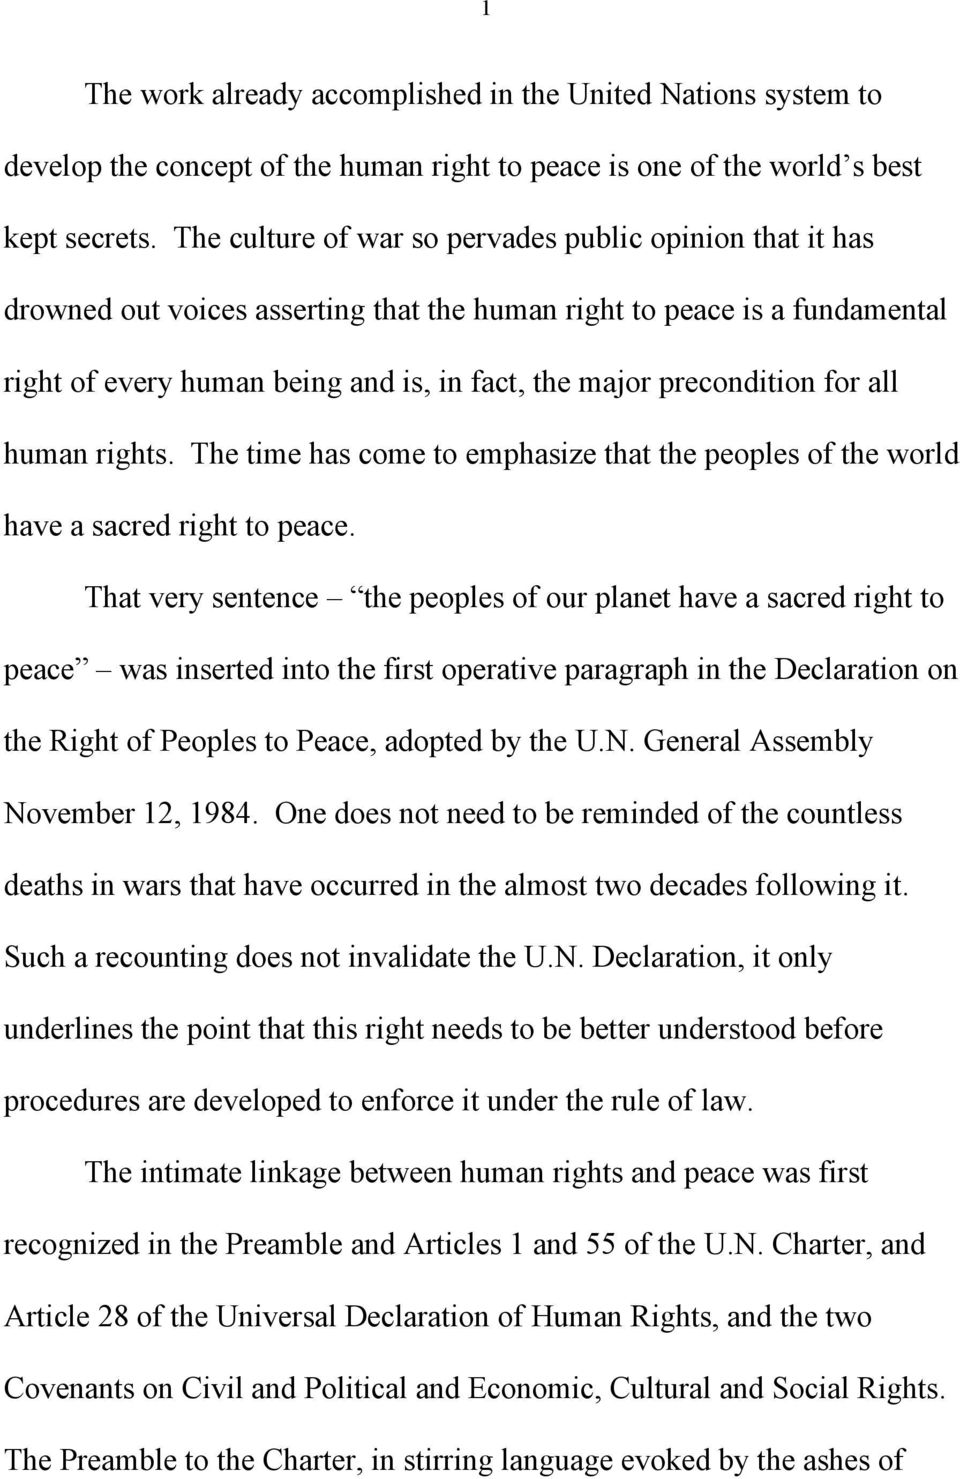 precondition for all human rights. The time has come to emphasize that the peoples of the world have a sacred right to peace.